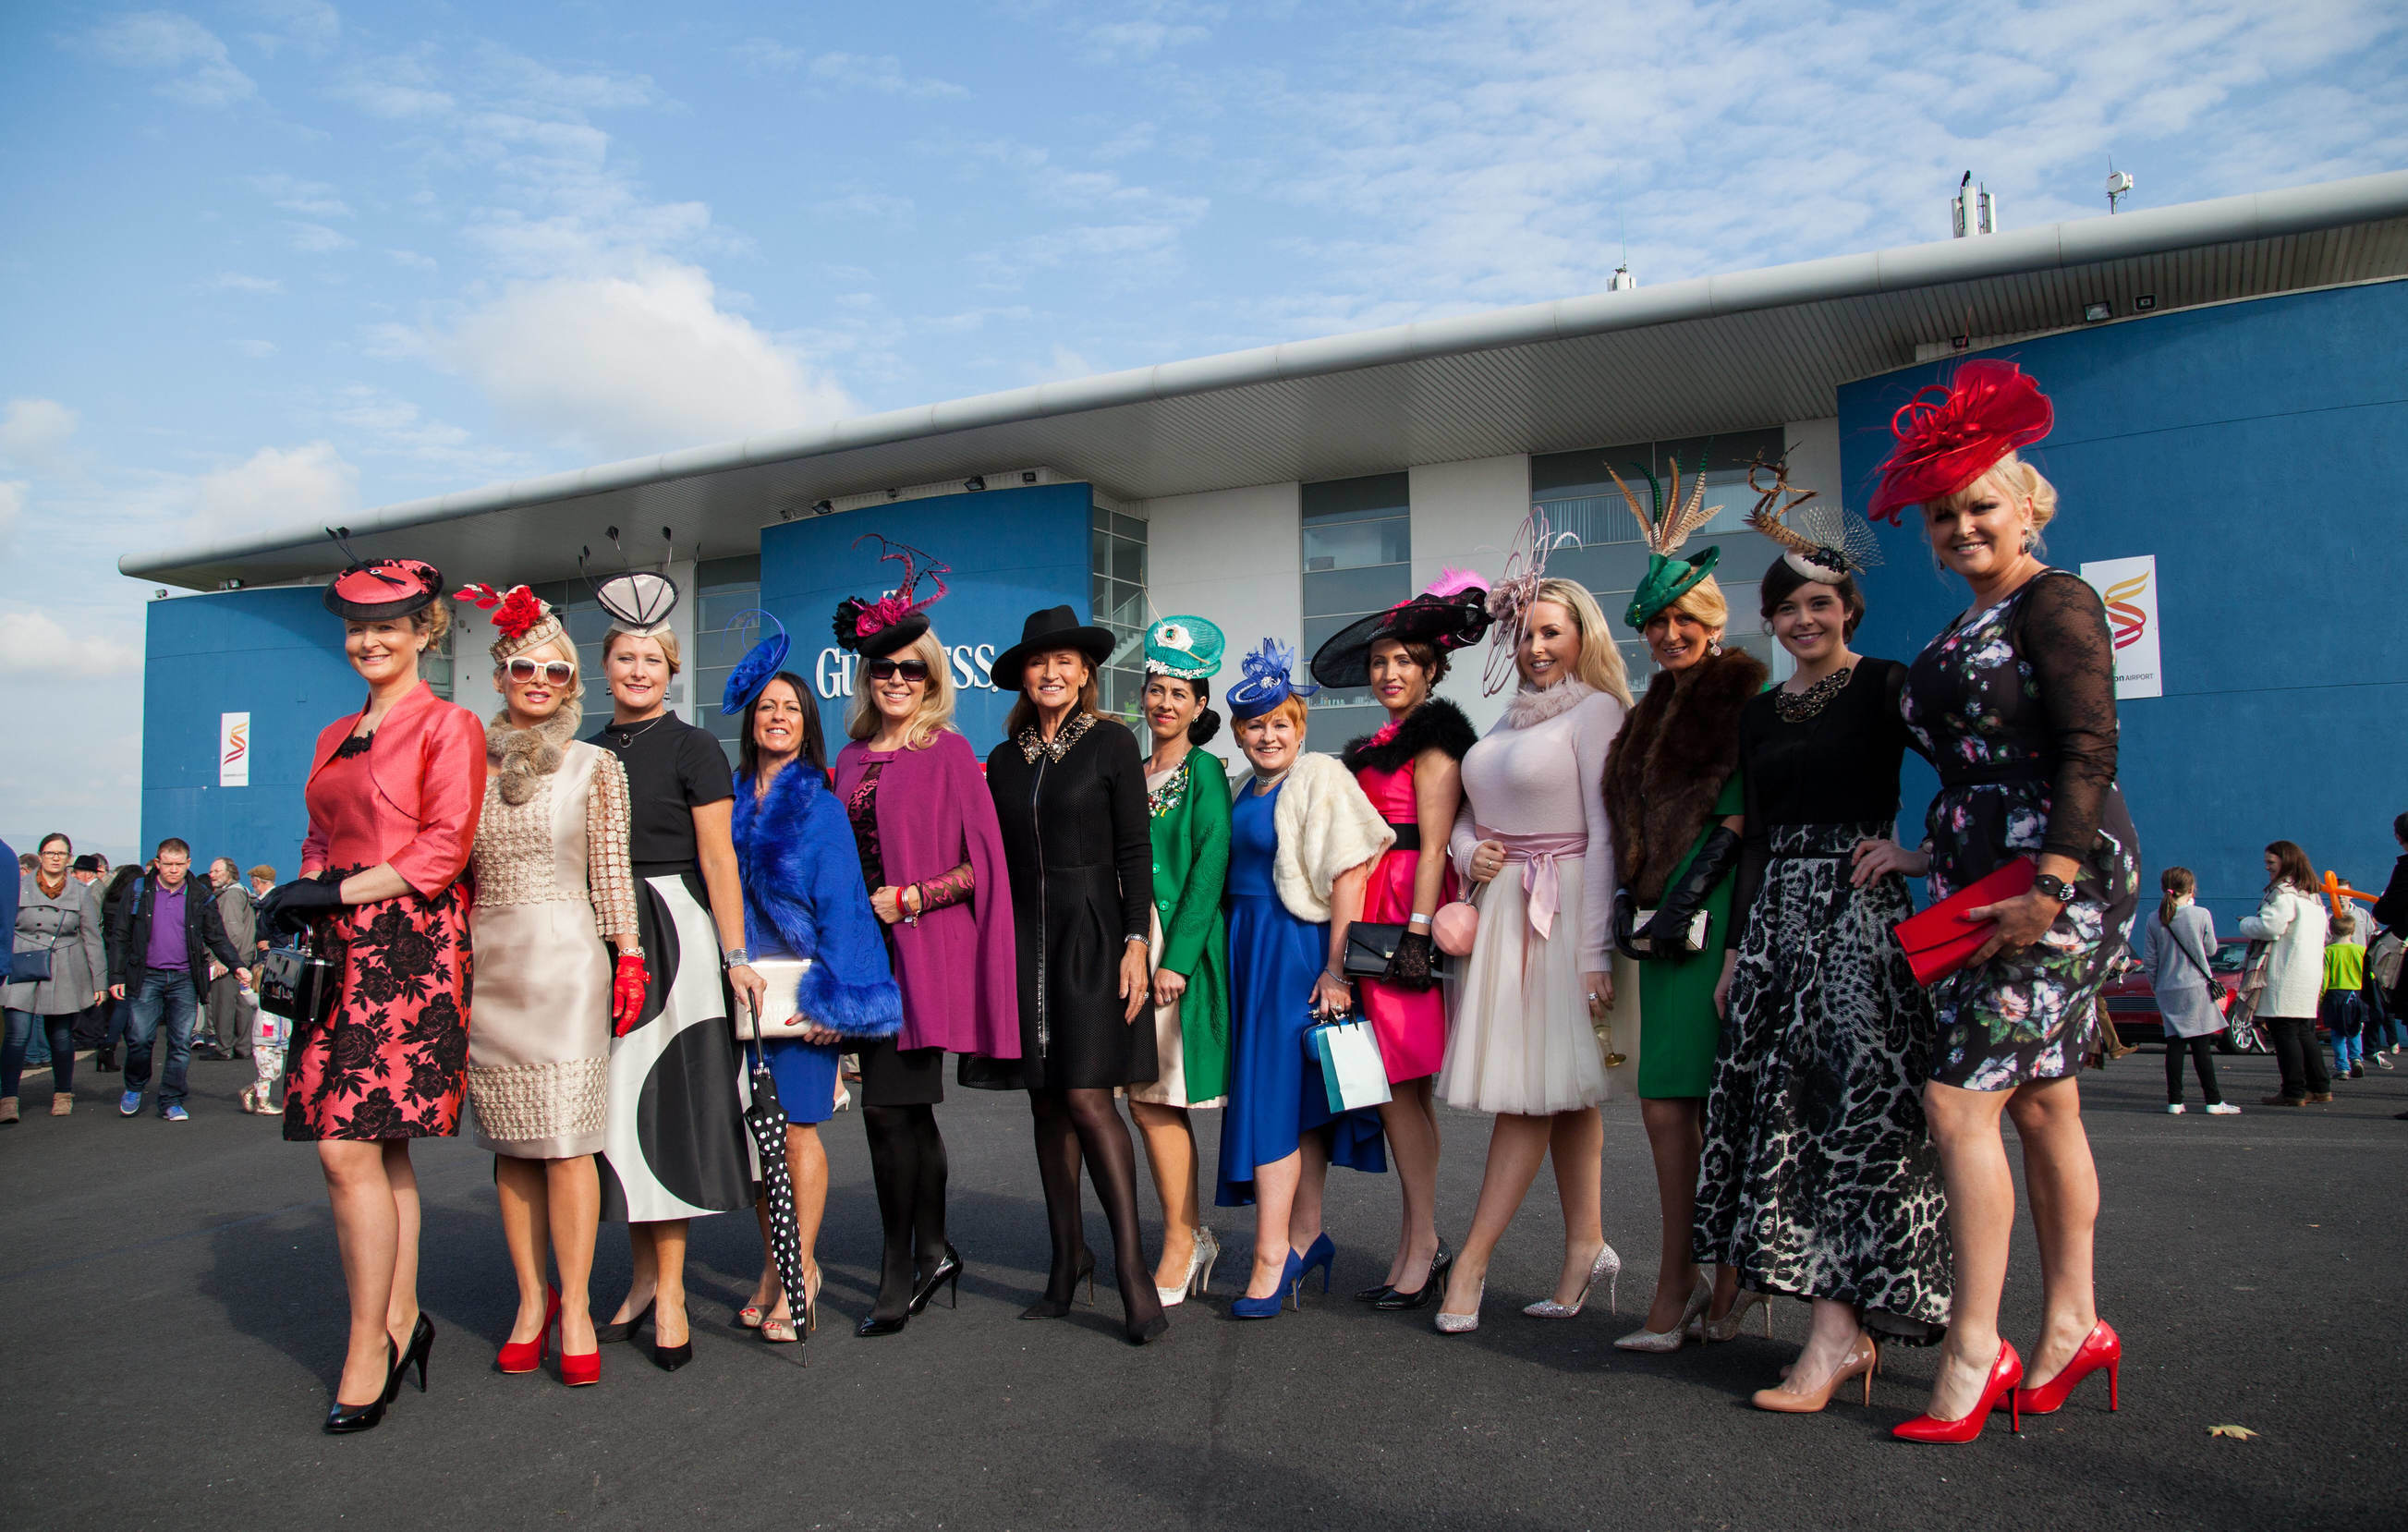 Keanes Jewellers Ladies Day 2016 will take place on Sunday, October 9 at Limerick Racecourse and is recognised as one of the top ladie